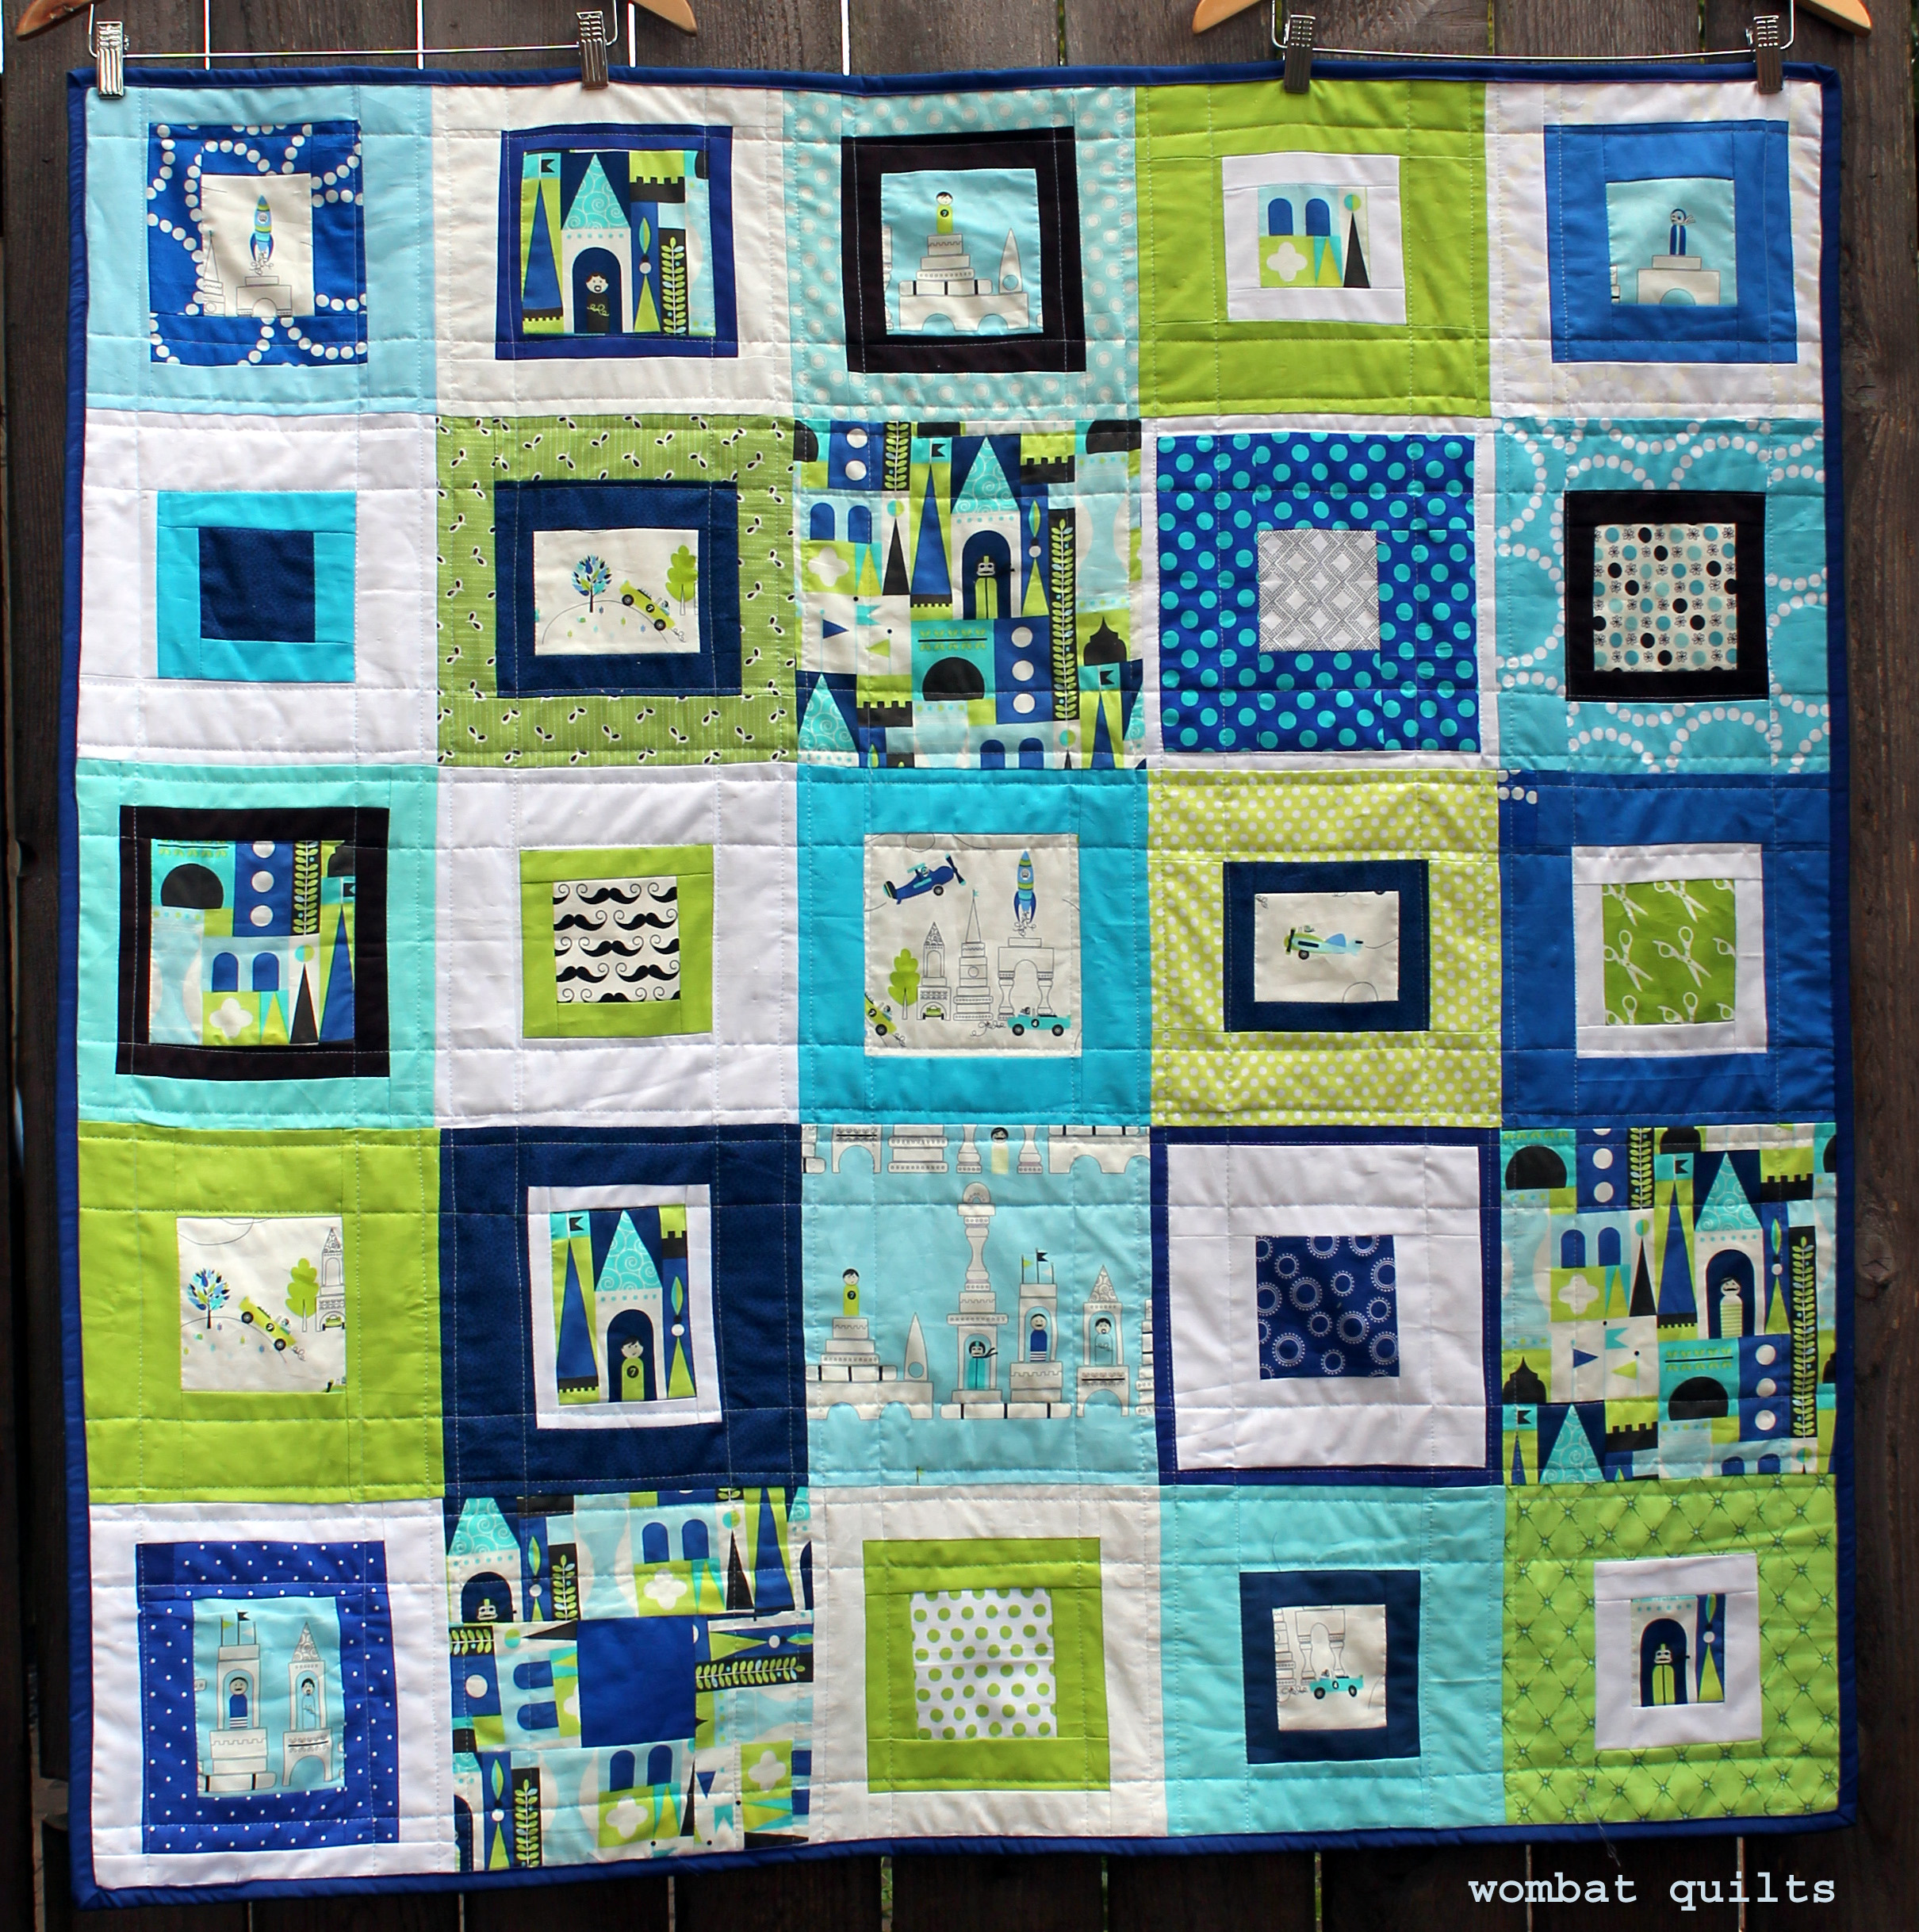 Cut a back for your quilt the same size as the top of your quilt. Cut the batting for your quilt the same size as the top and back. Place the batting on the table first. Then place the back of the quilt with the pretty side up. Then place the top of the quilt with the pretty side down.